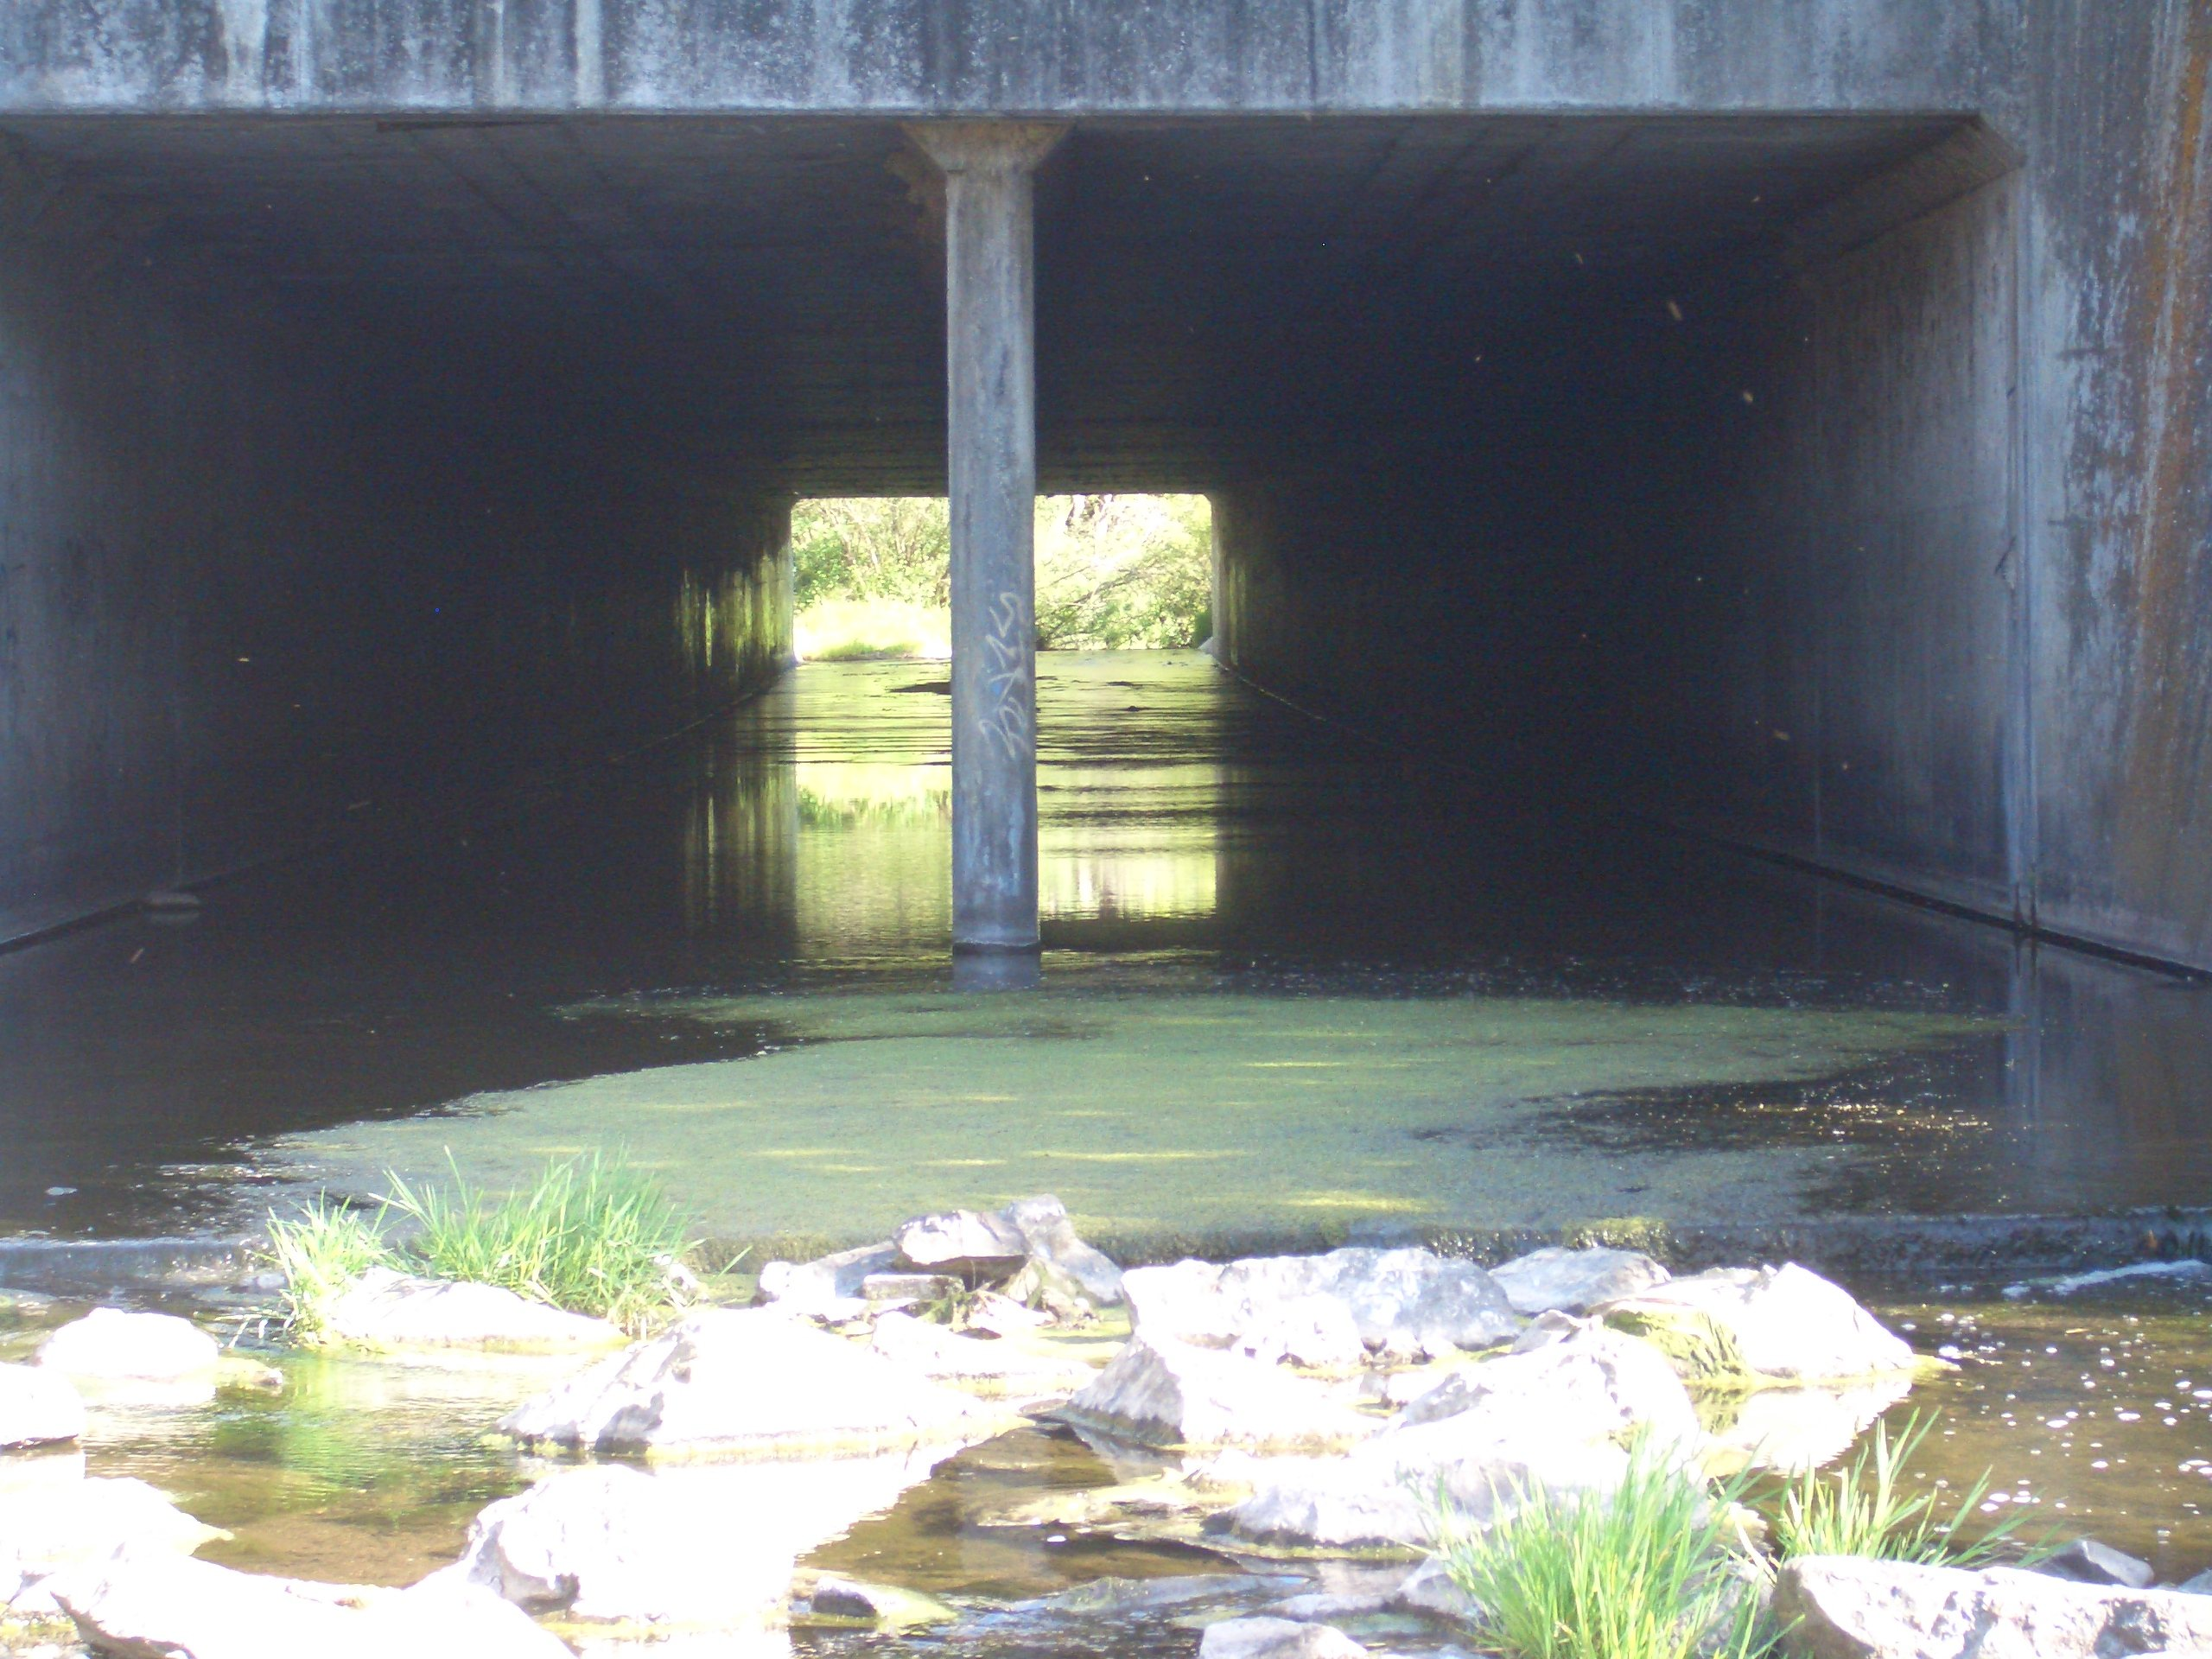 Double box culvert under I-80 prior to construction